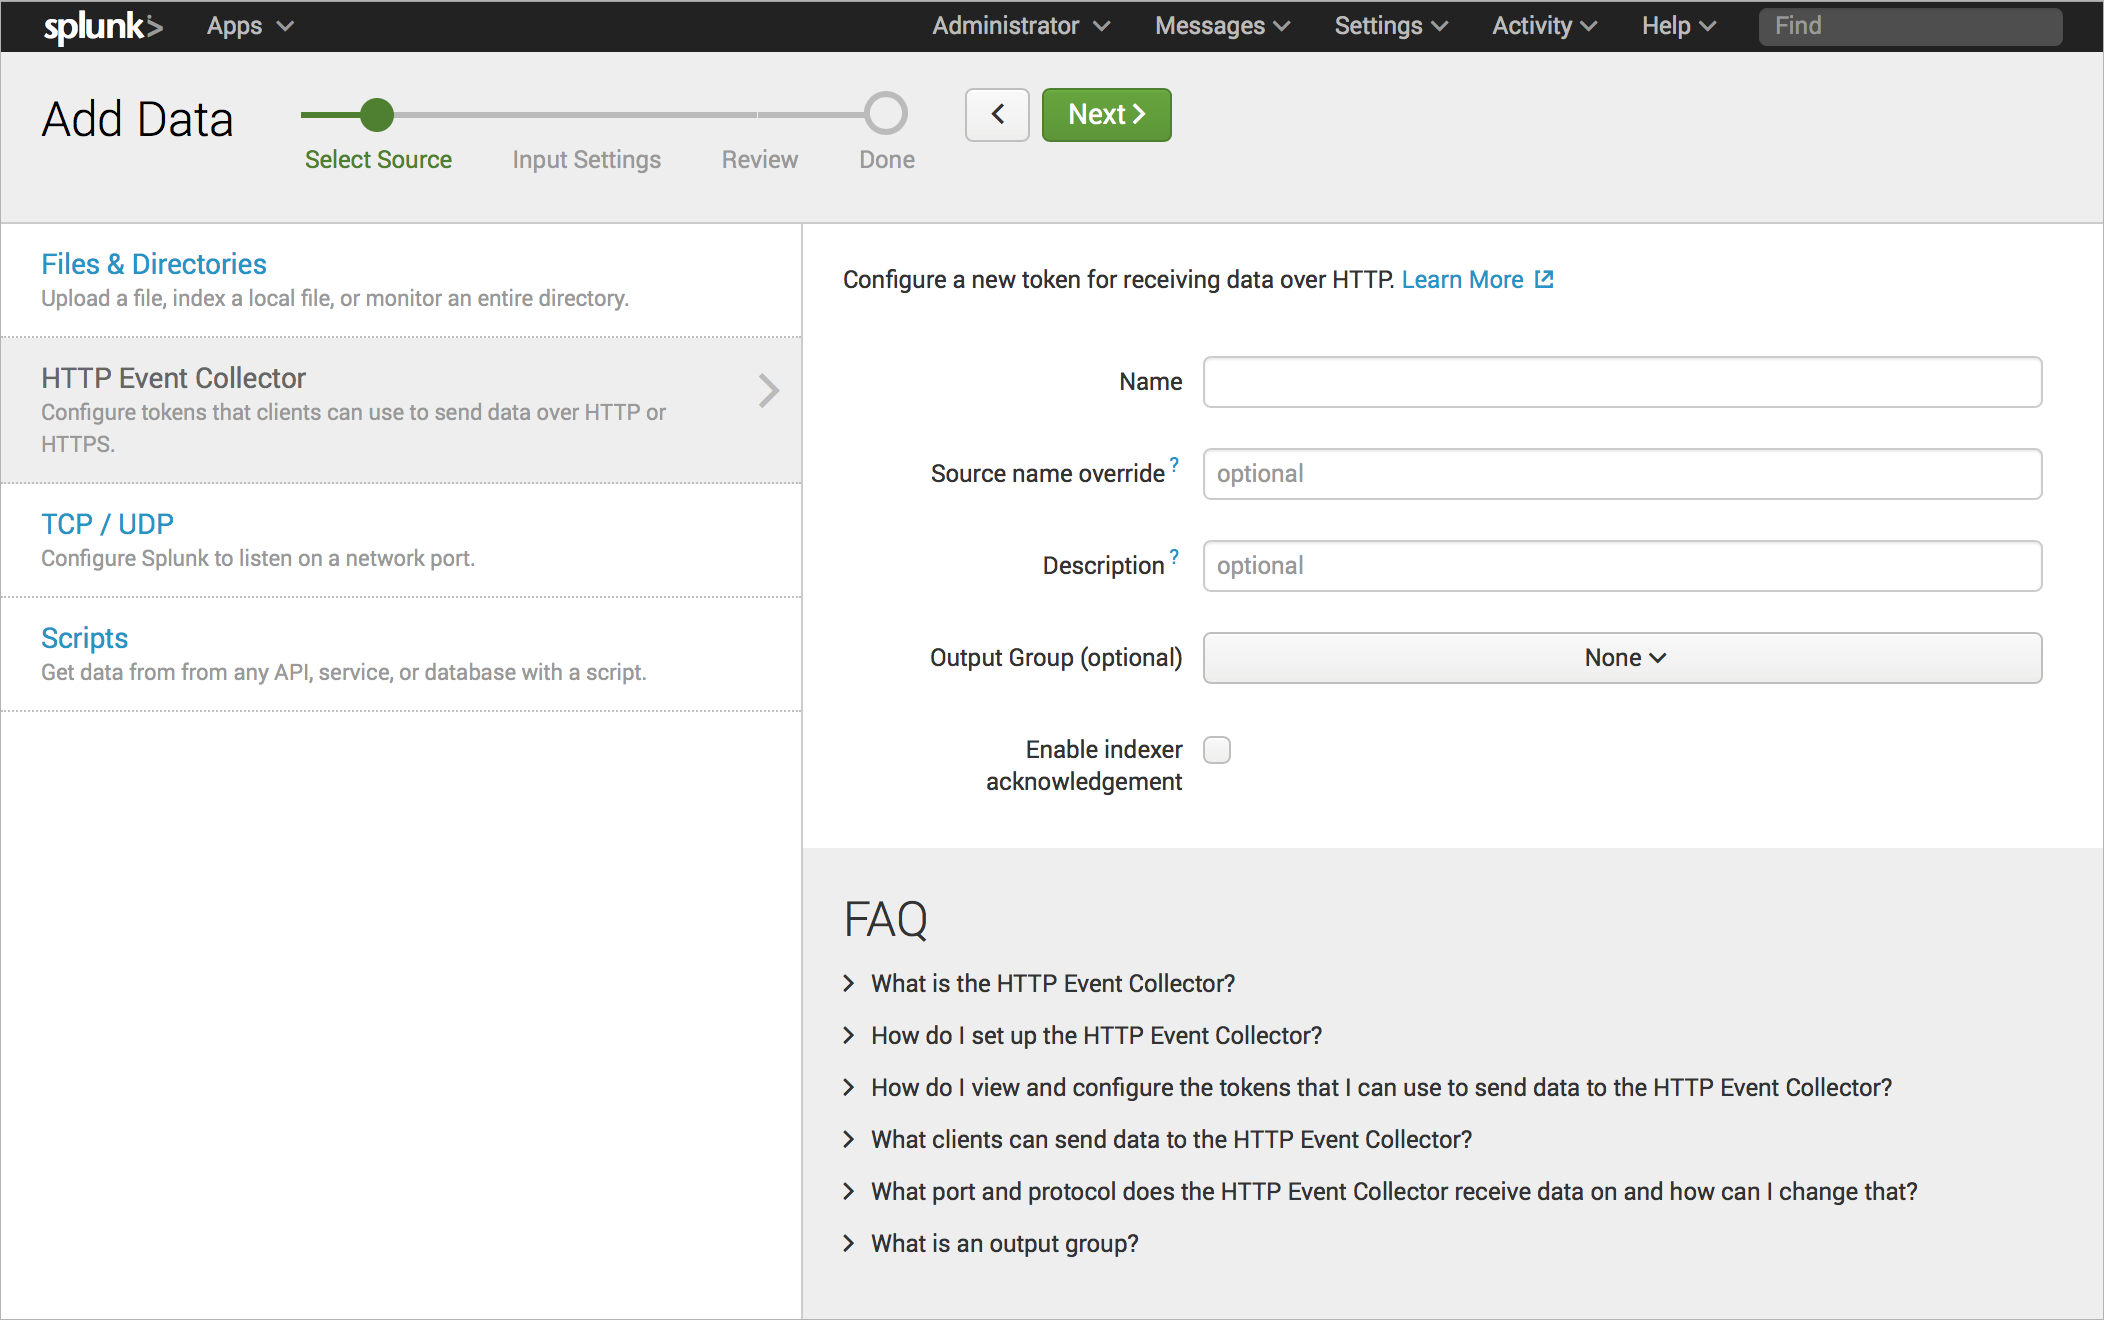 Screen shot of HTTP Event Collector new token Select Source page